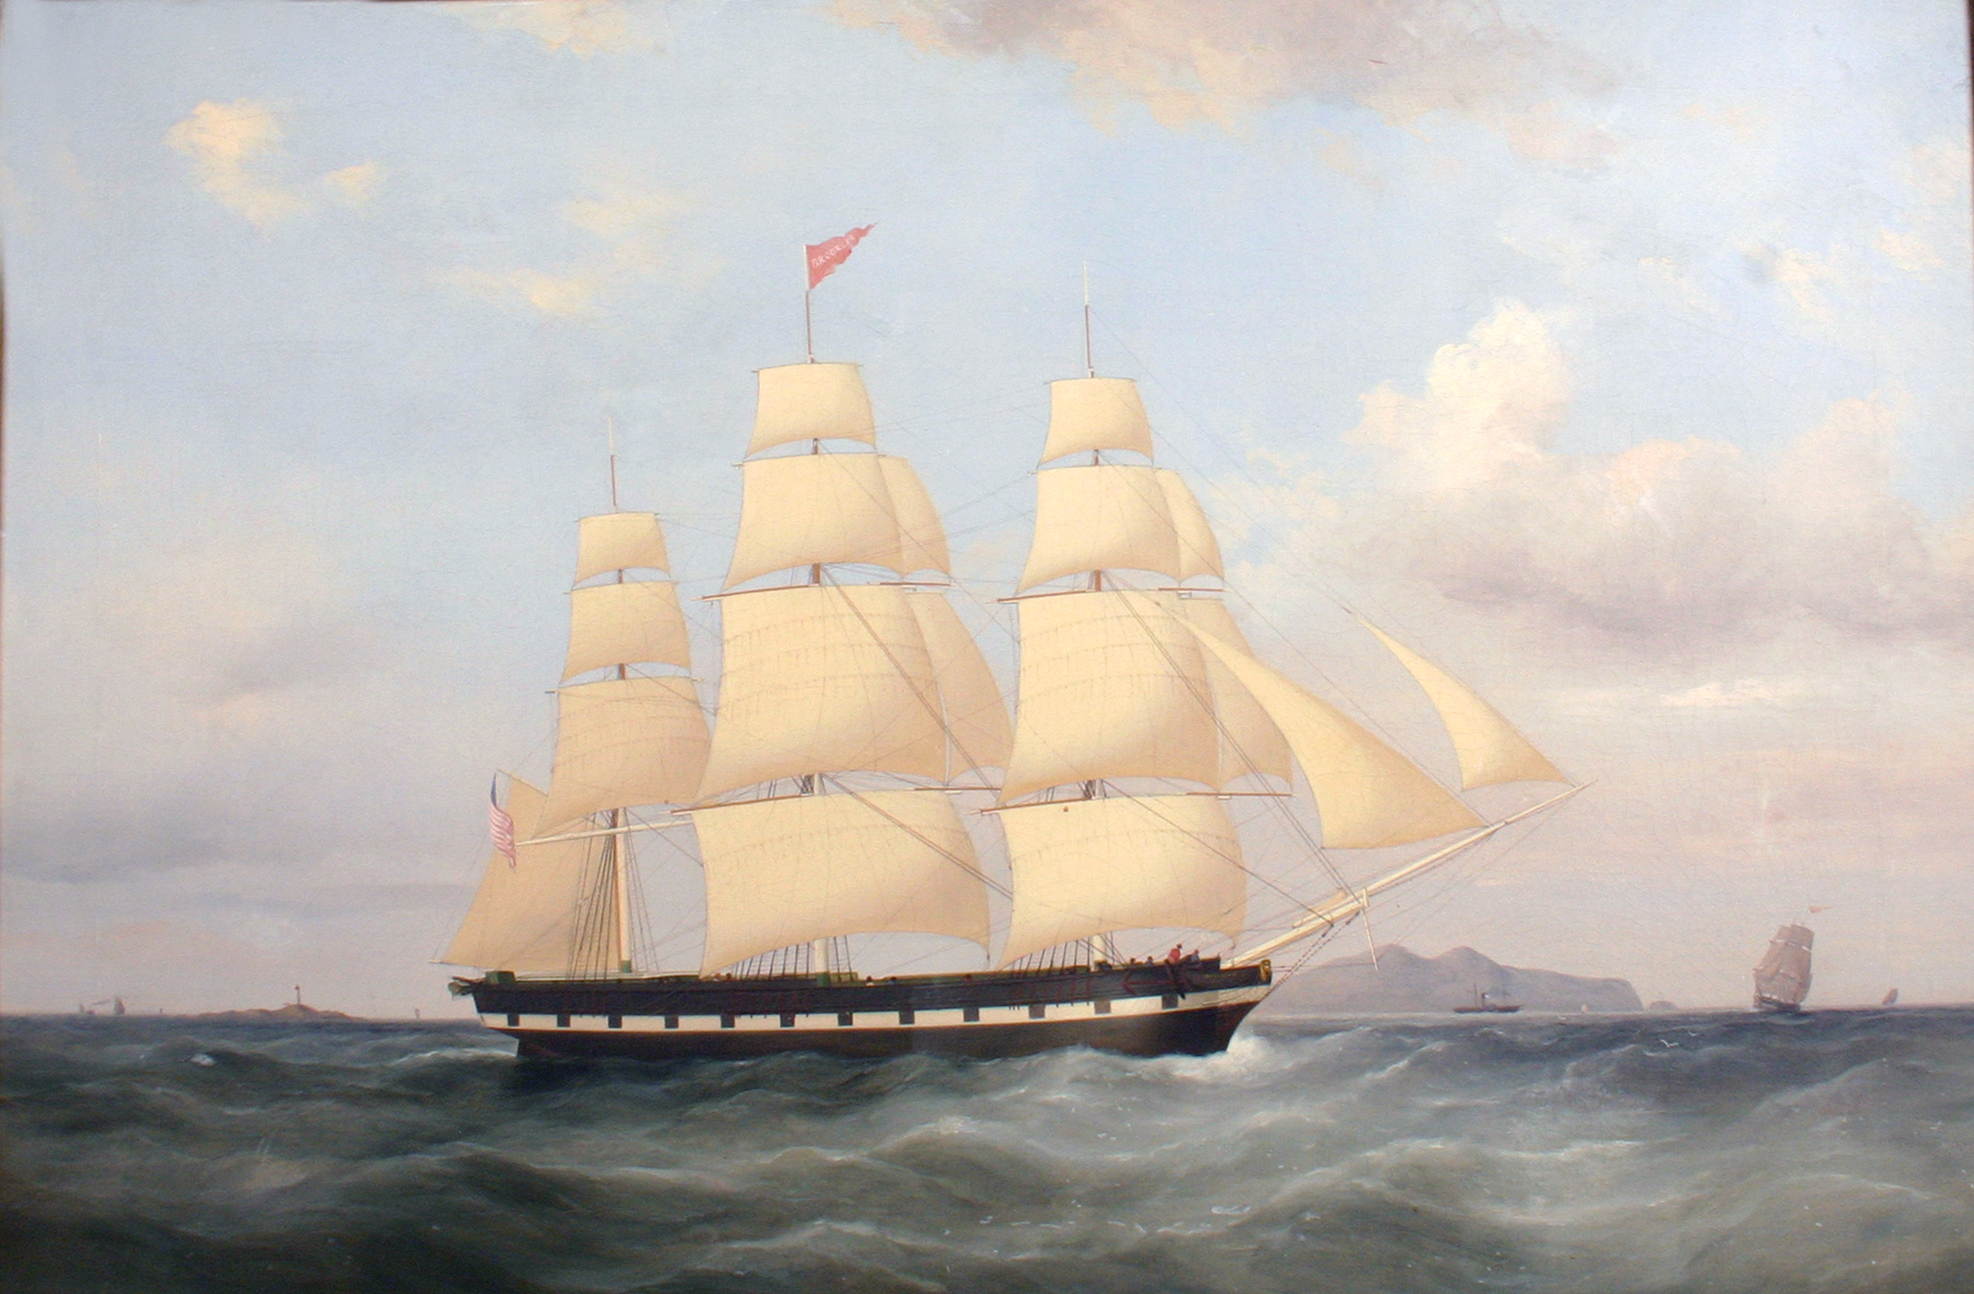 Painting of the Ship Brooklyn by artist Duncan McFarlane had relevant Mormon history.